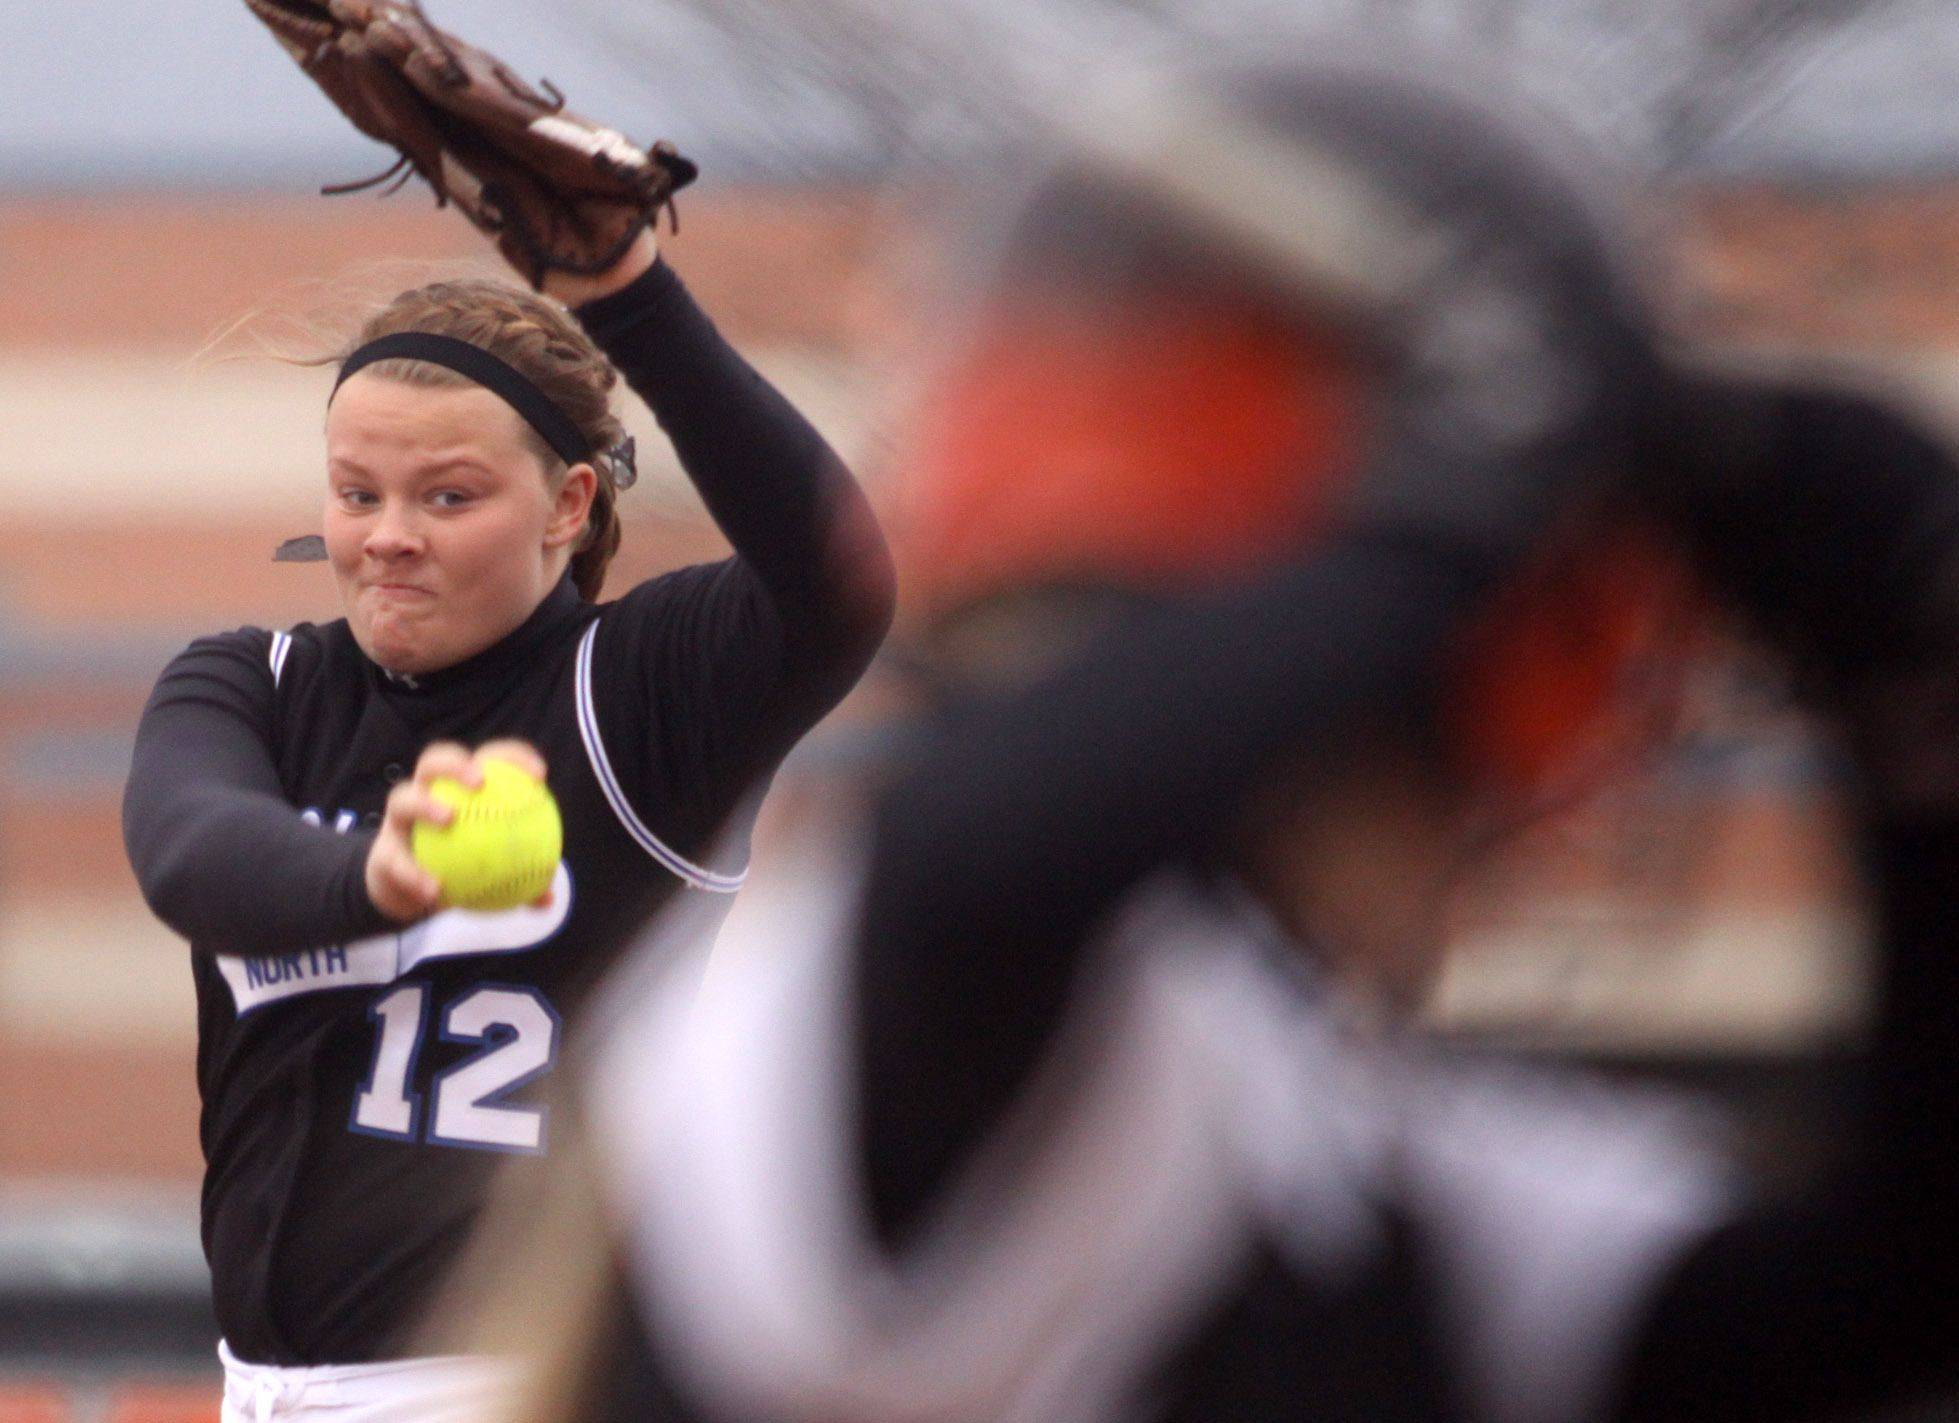 St. Charles North hurler Amanda Ciran bears down on an opposing batter at St. Charles East Monday afternoon.